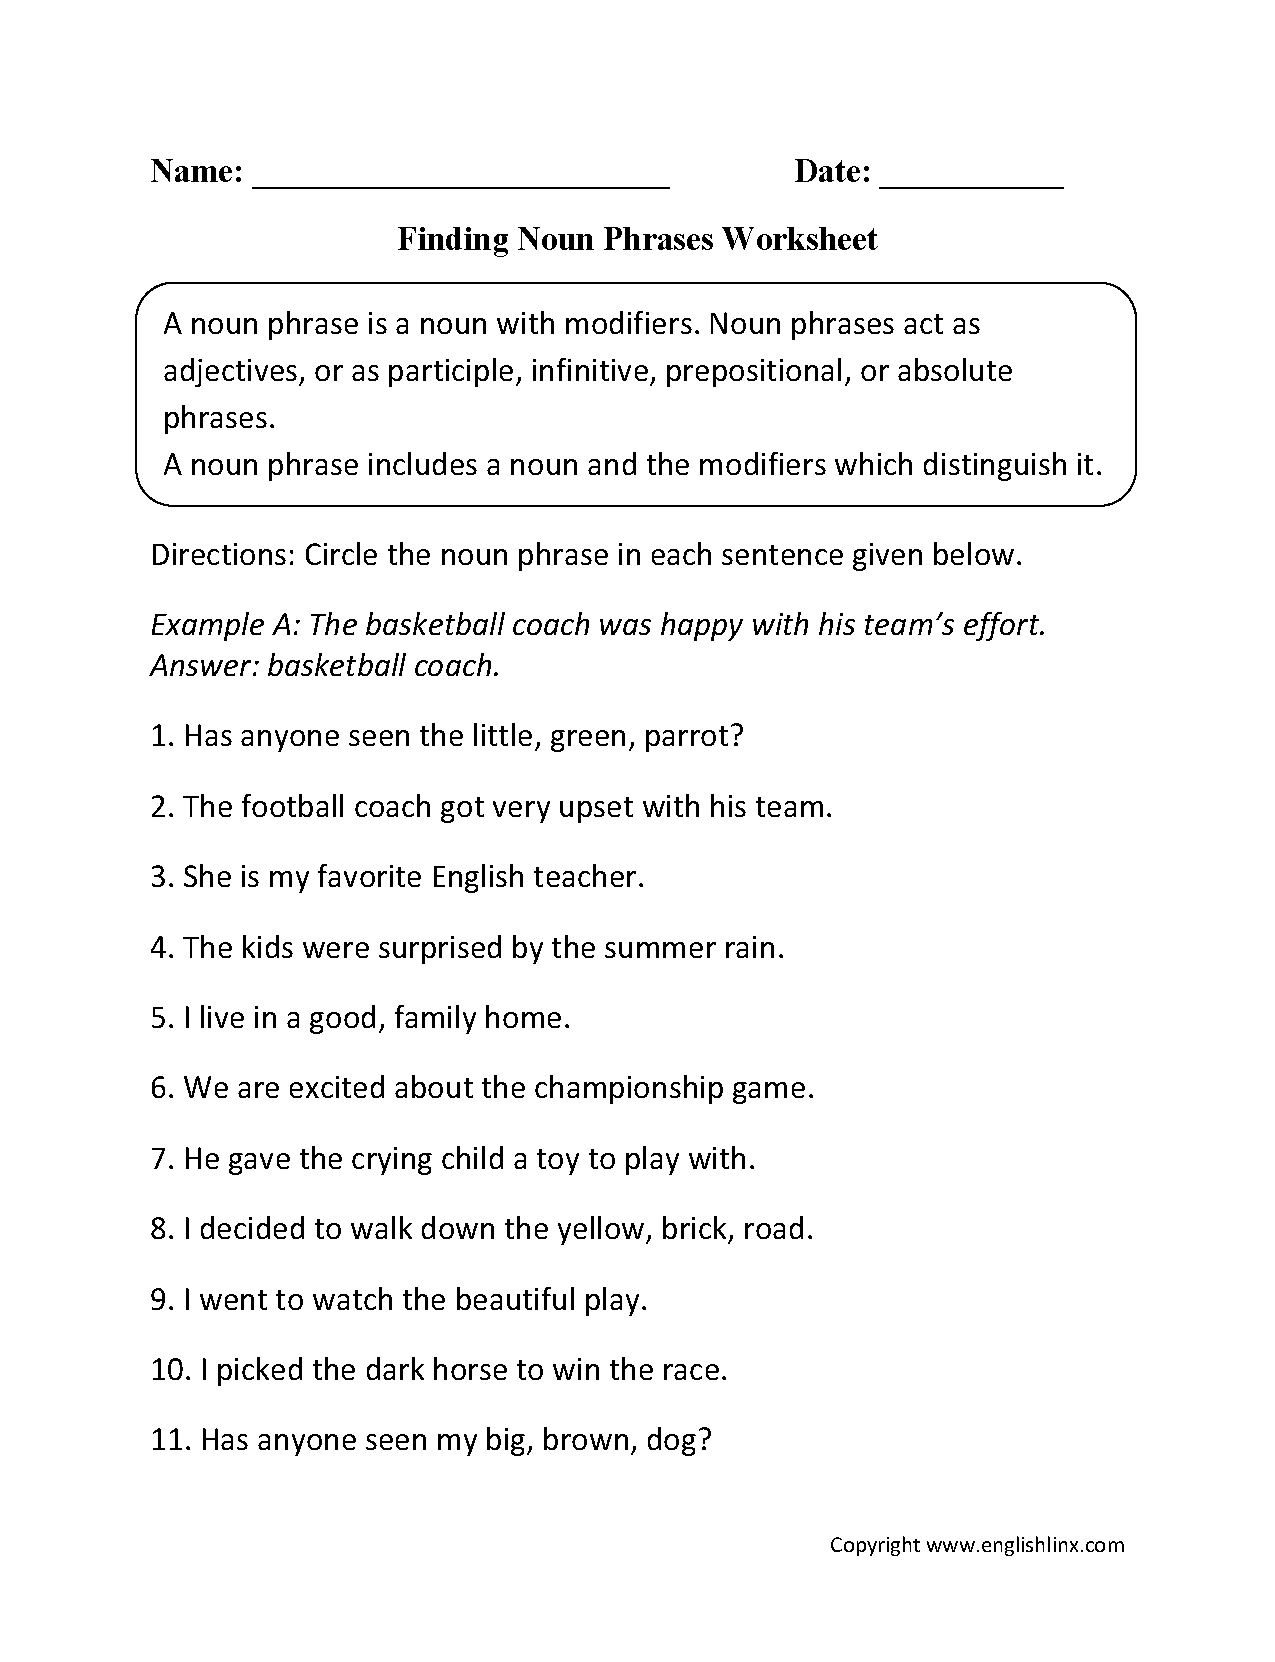 Printables Noun Worksheet englishlinx com nouns worksheets noun phrases worksheets